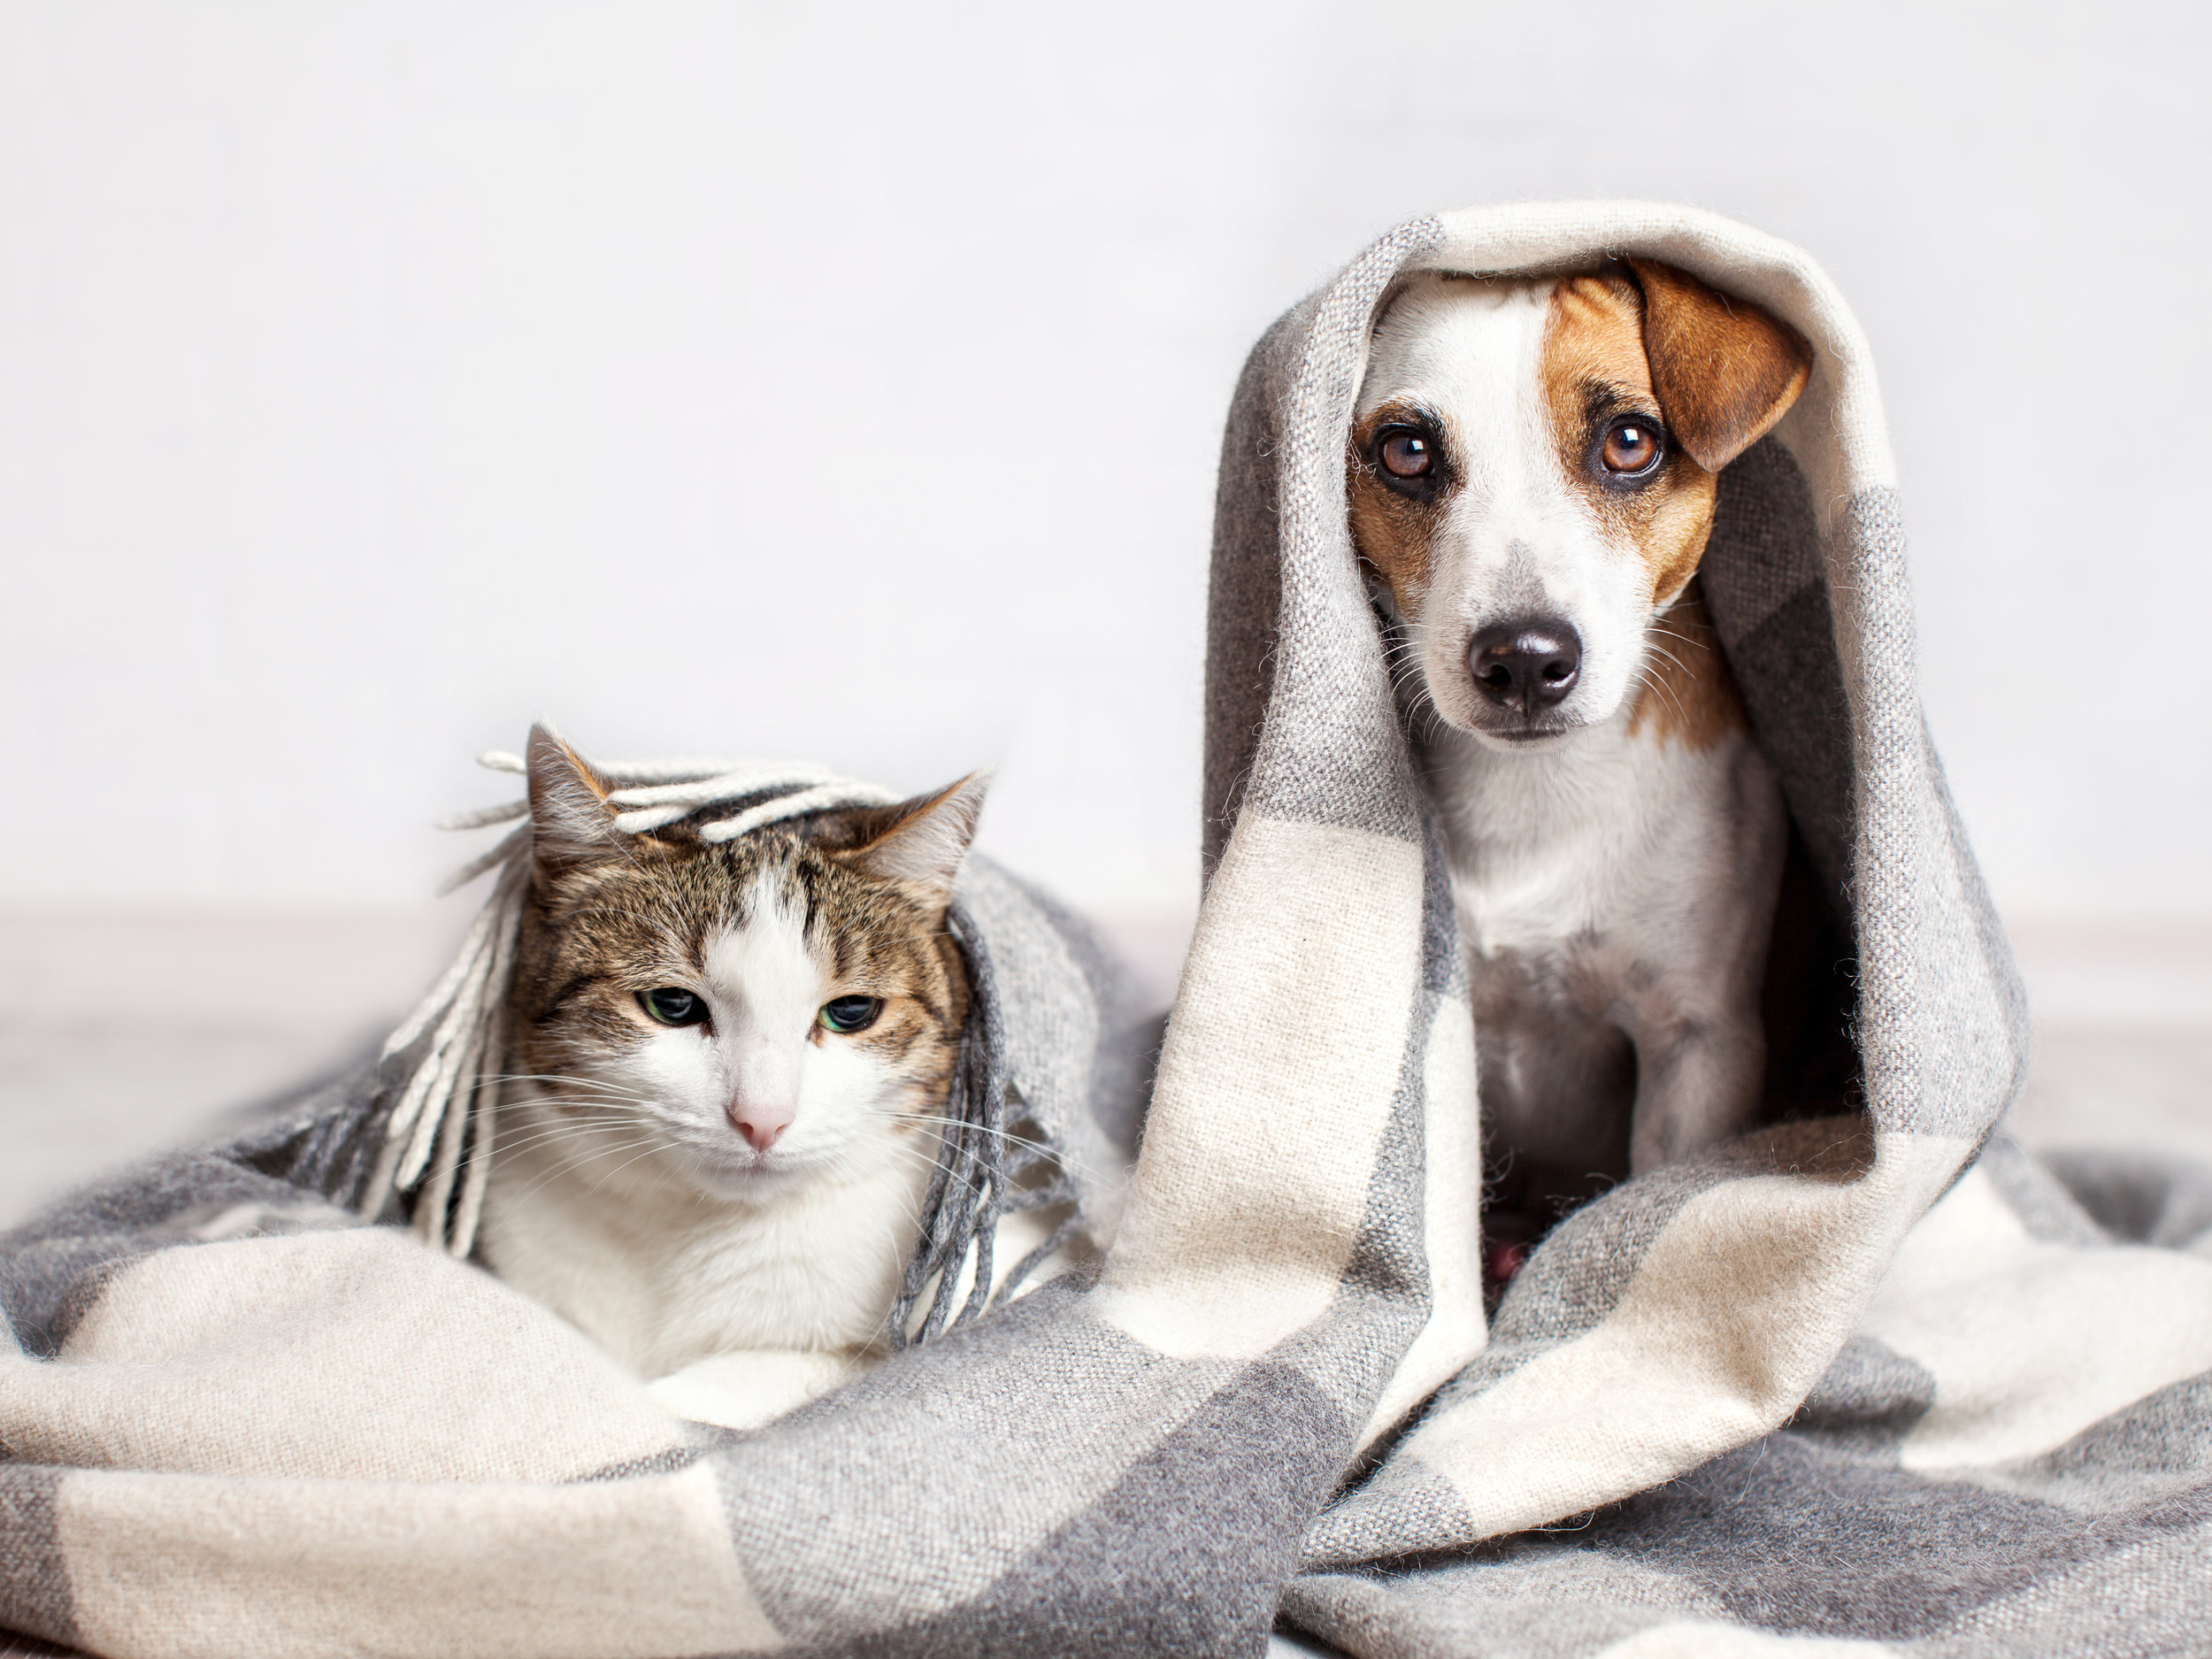 bigstock-Dog-and-cat-under-a-plaid-Pet-207104617.jpg